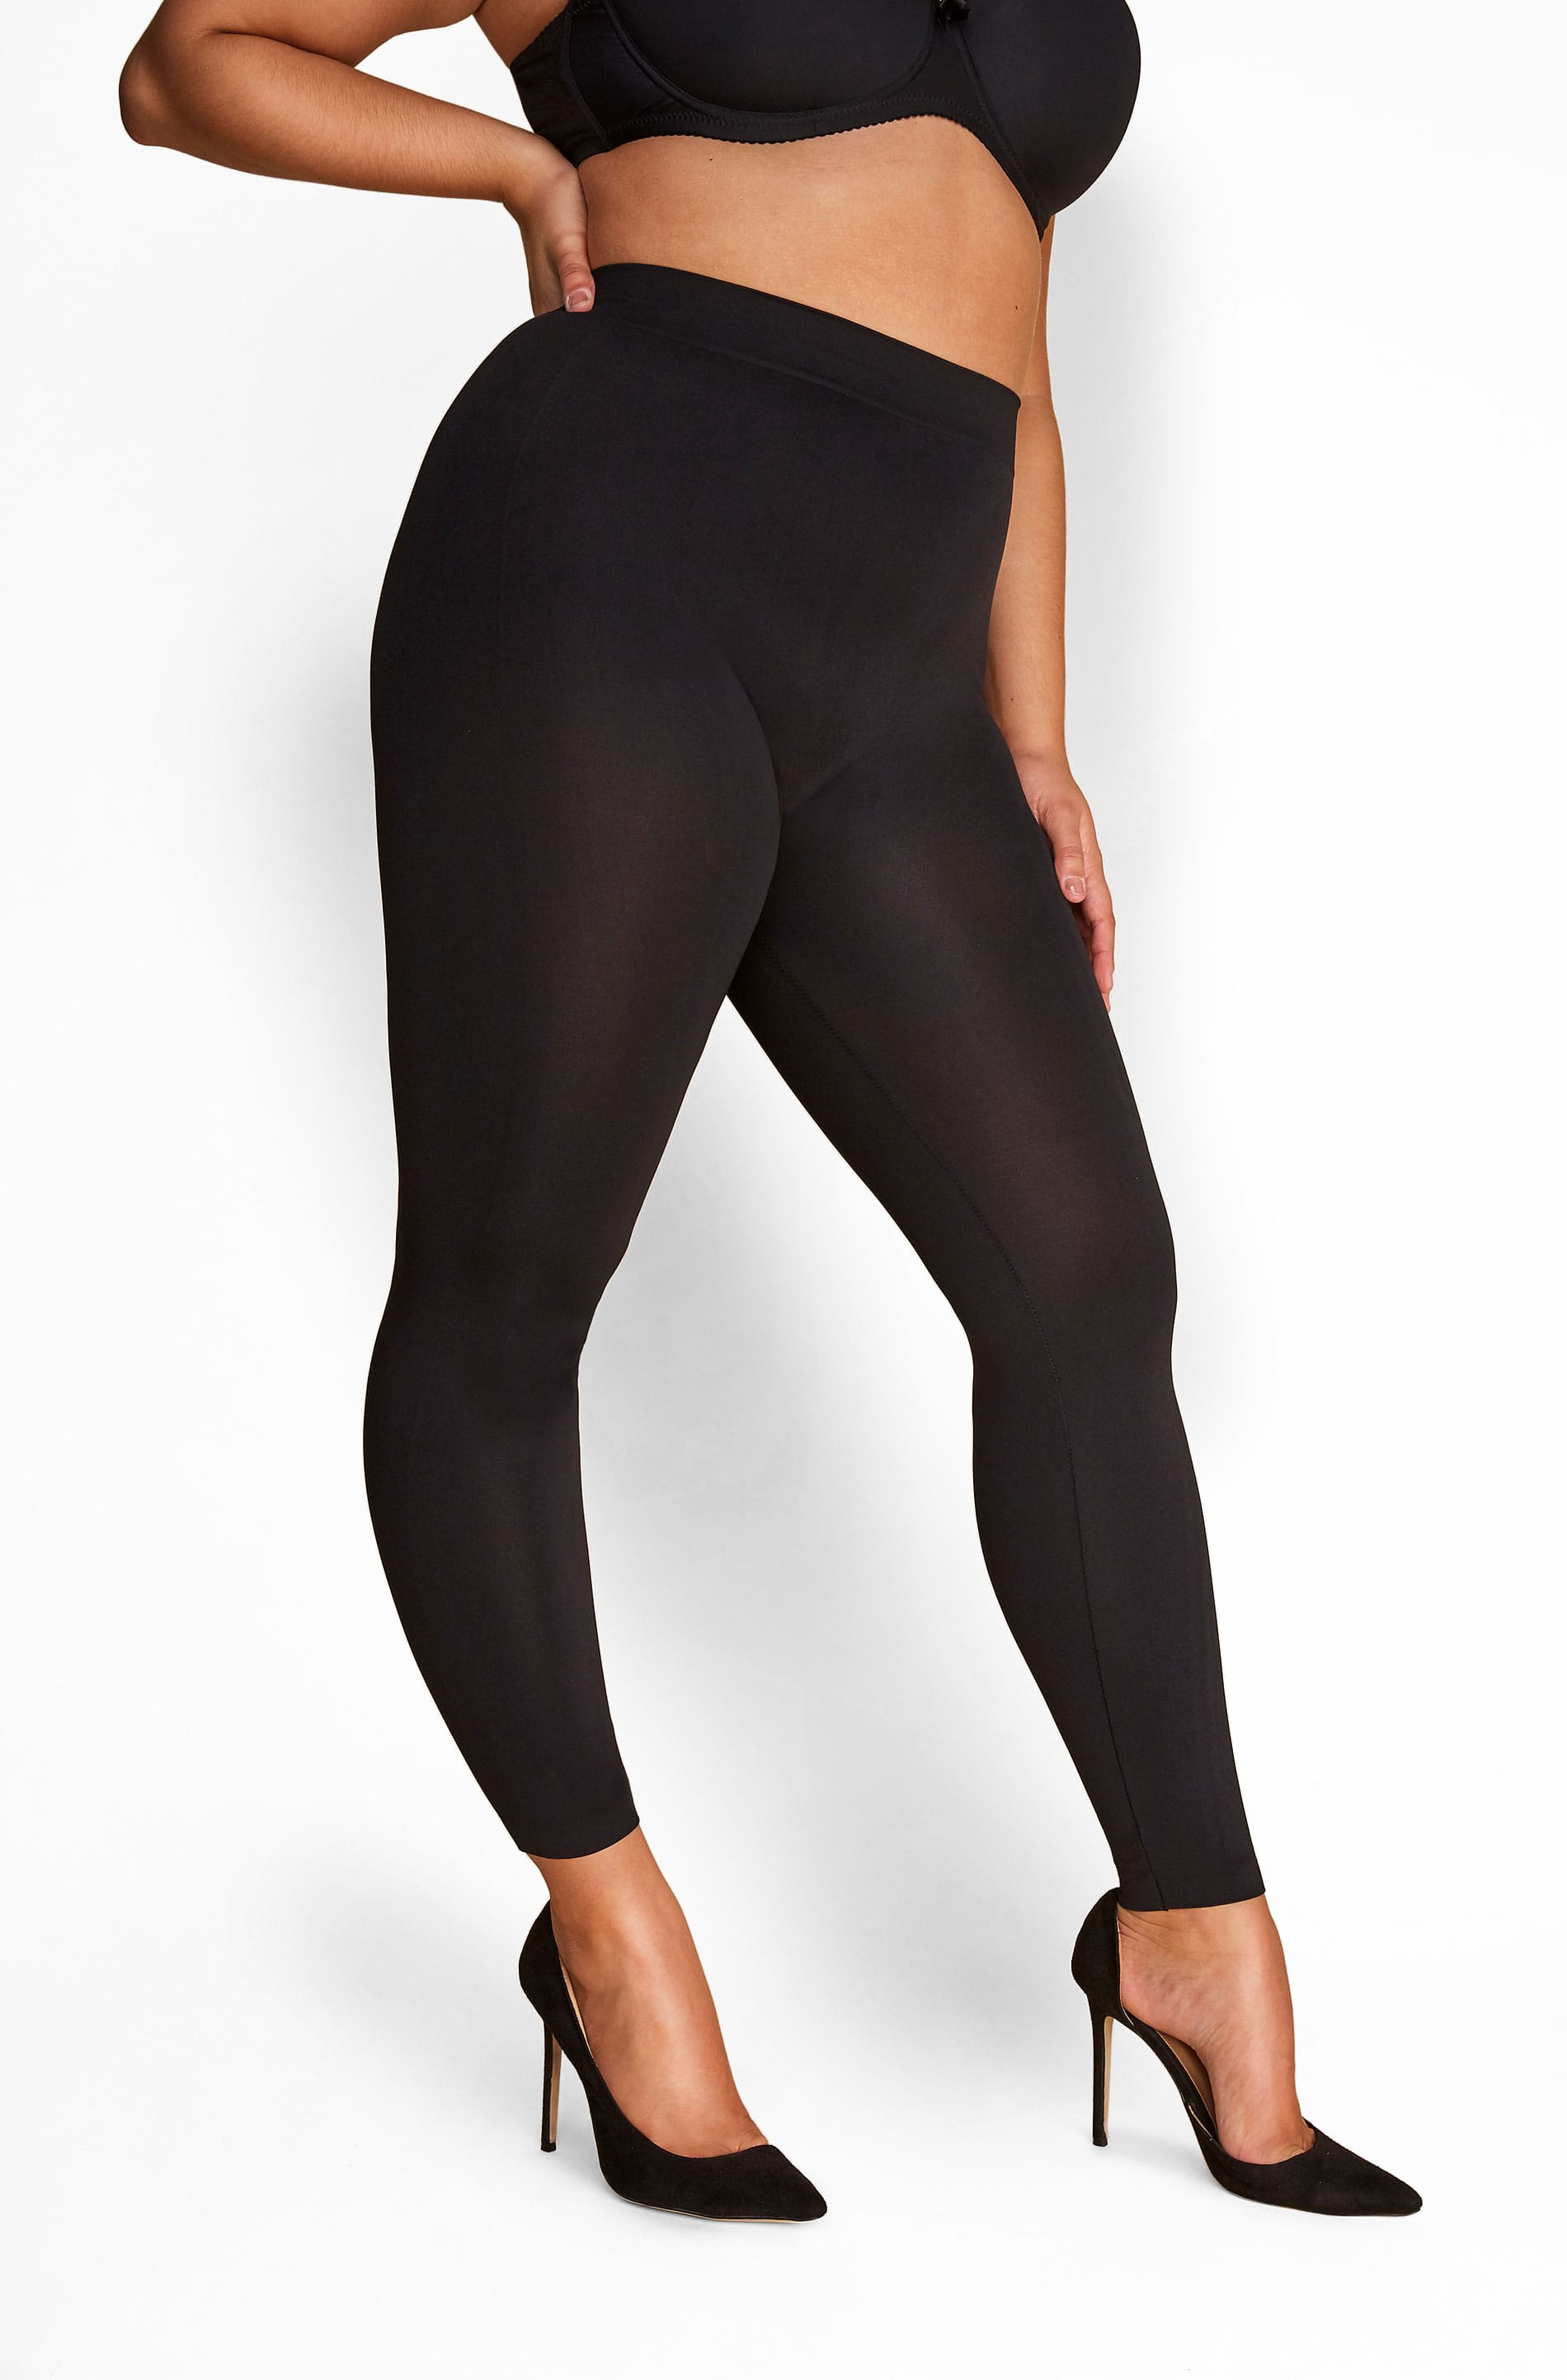 Black Slimming Control Leggings